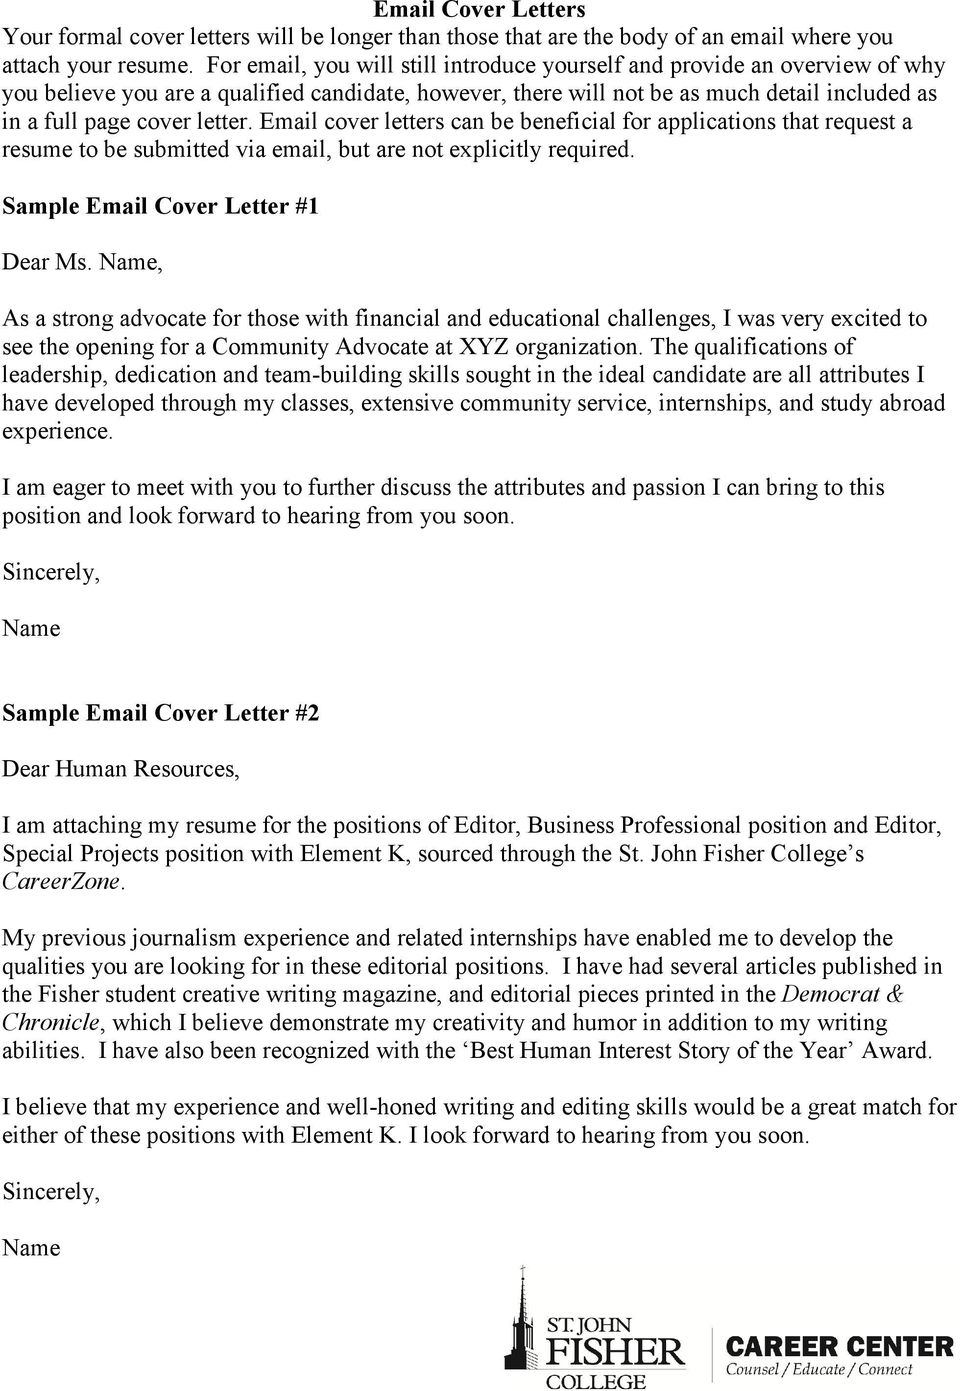 Letter Email Cover Letters Can Be Beneficial For Applications That Request A Resume To